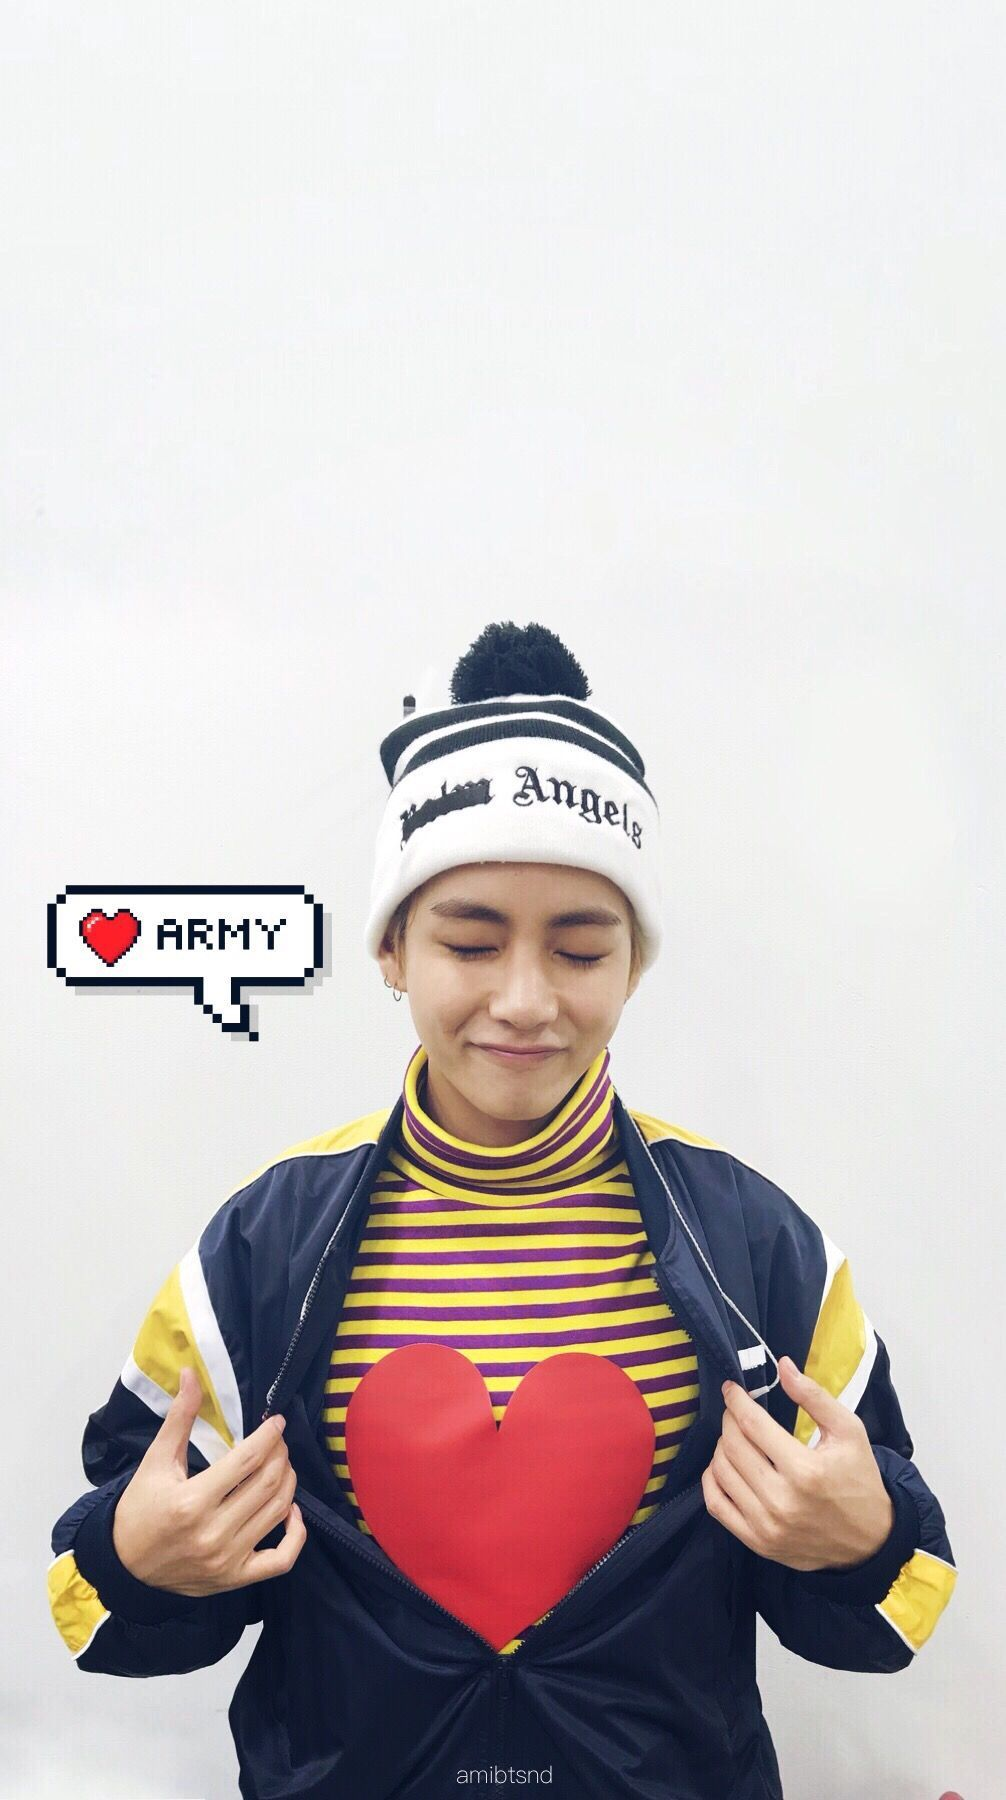 V Cute Wallpaper Btsv Cute Wallpaper Bts Bts Wallpaper Hd 67 Images